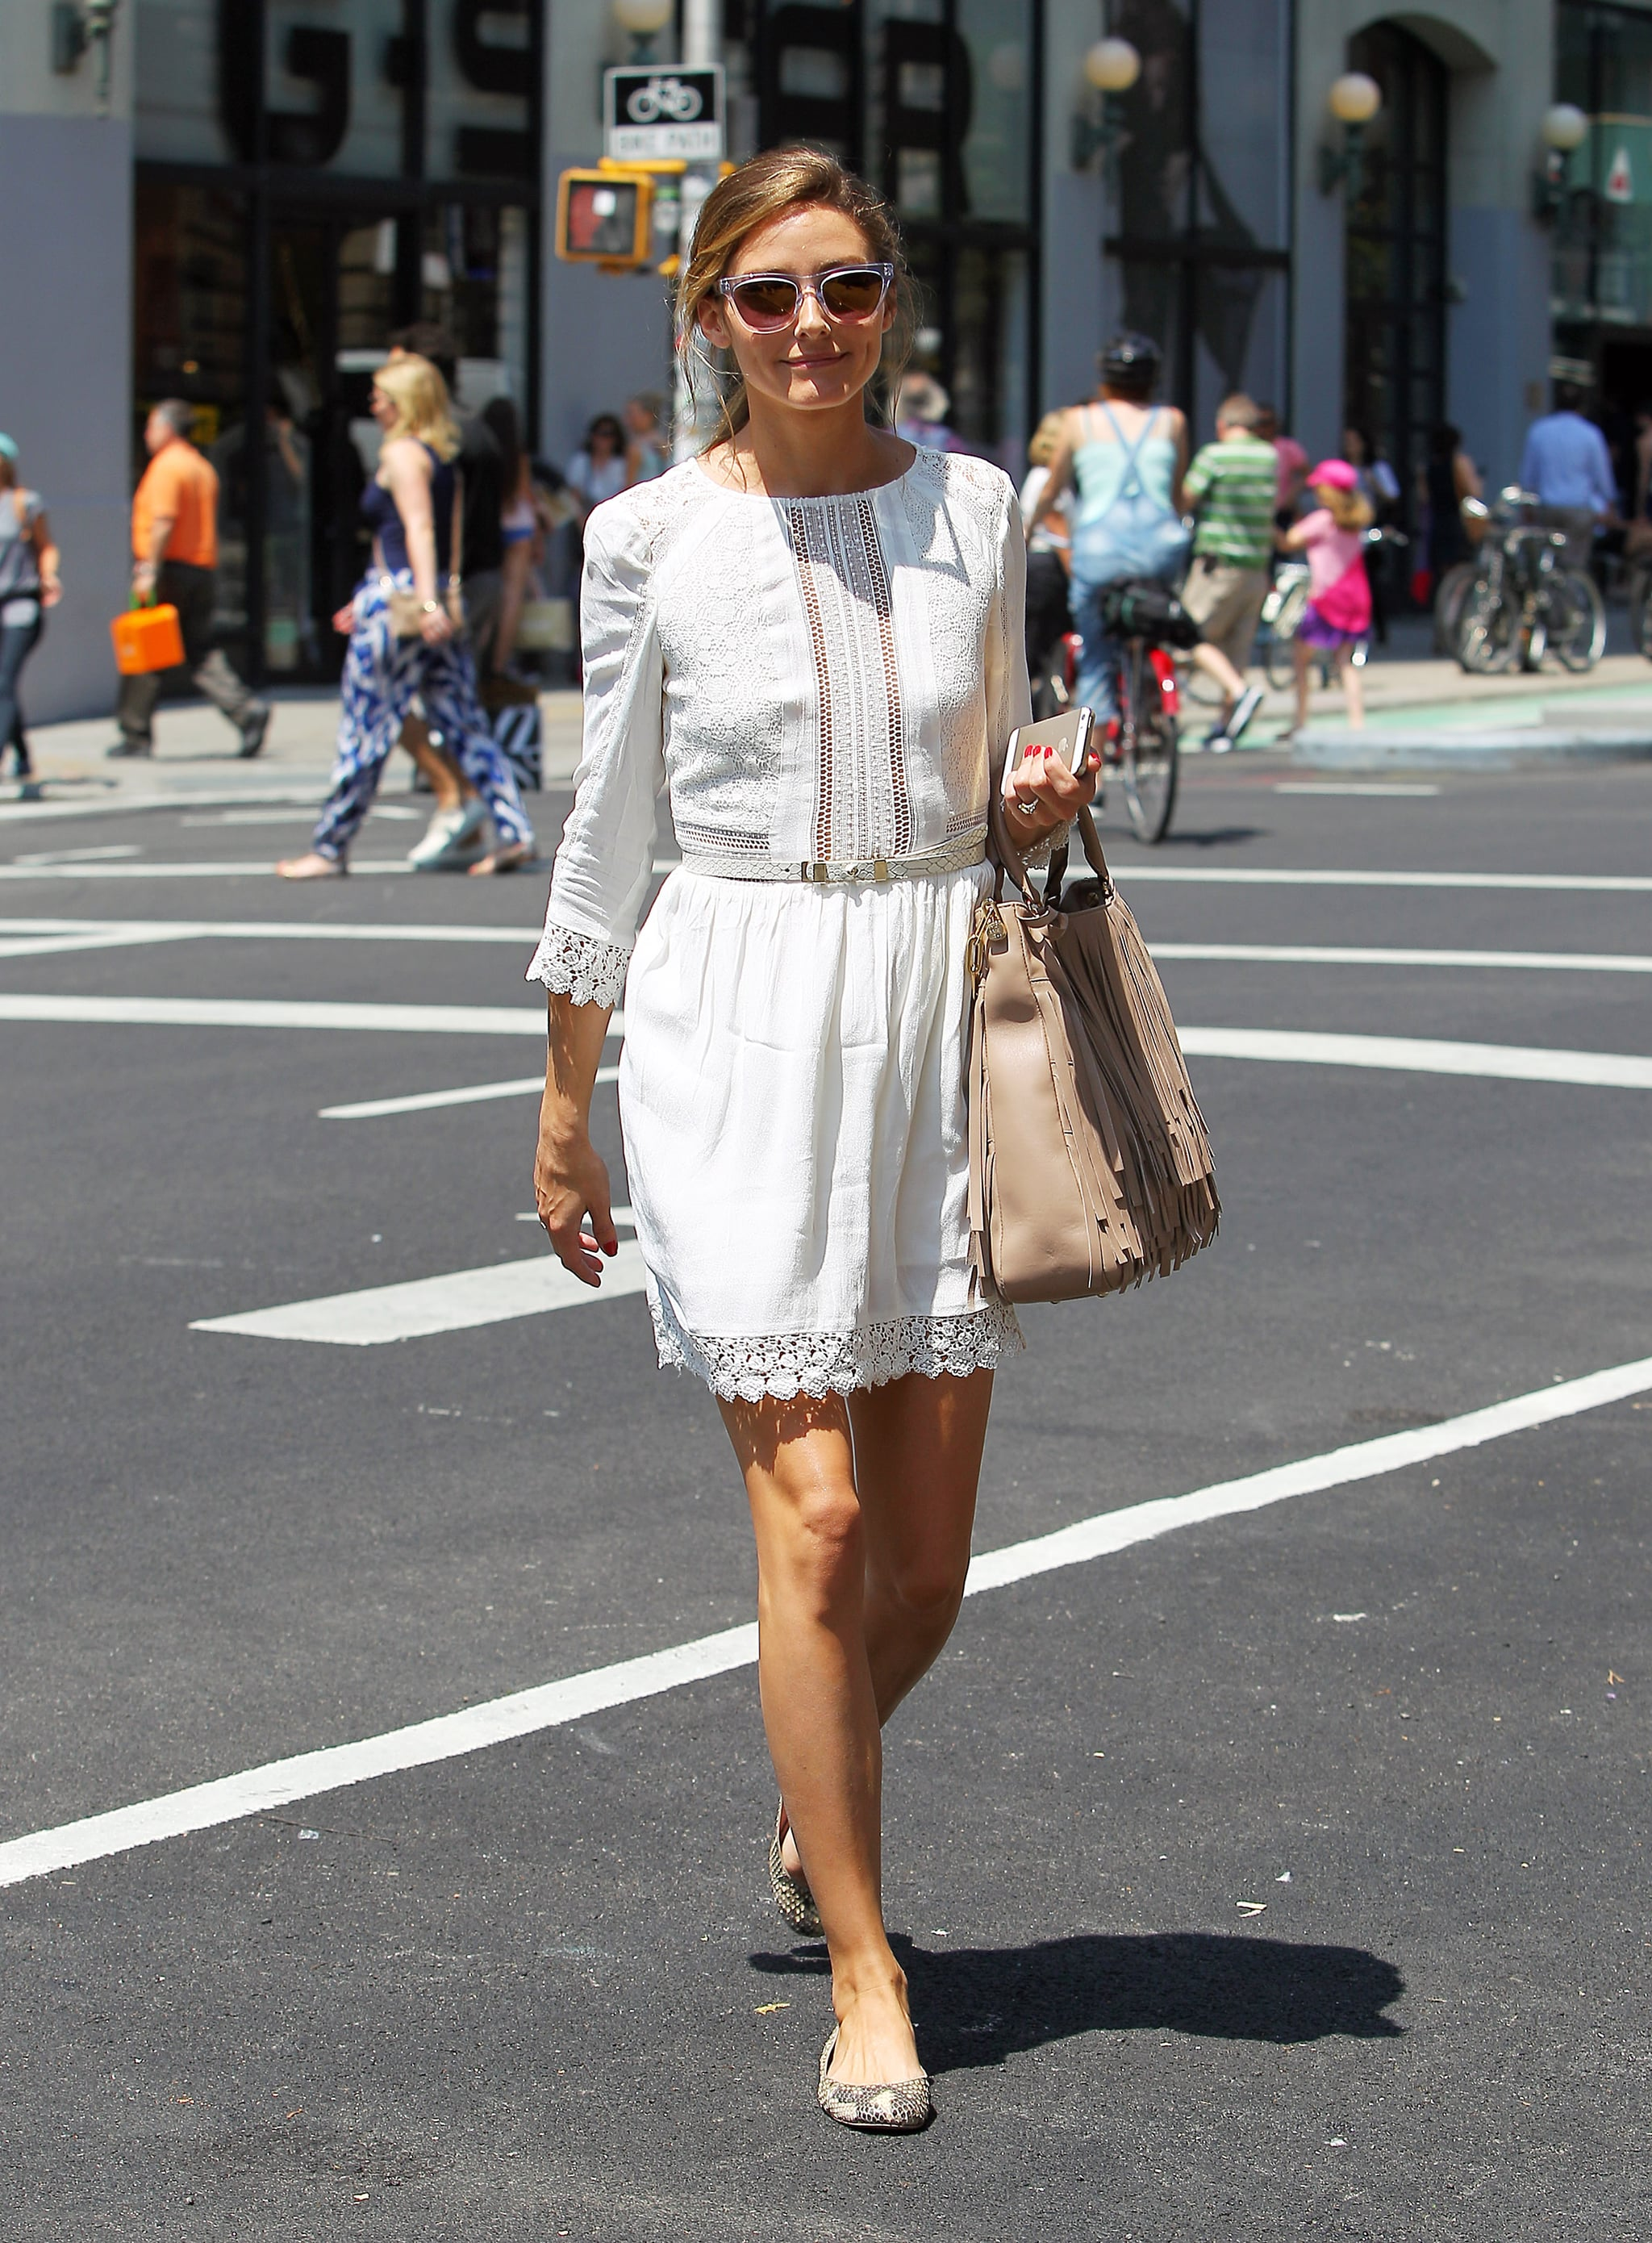 Olivia Palermo in a White Dress